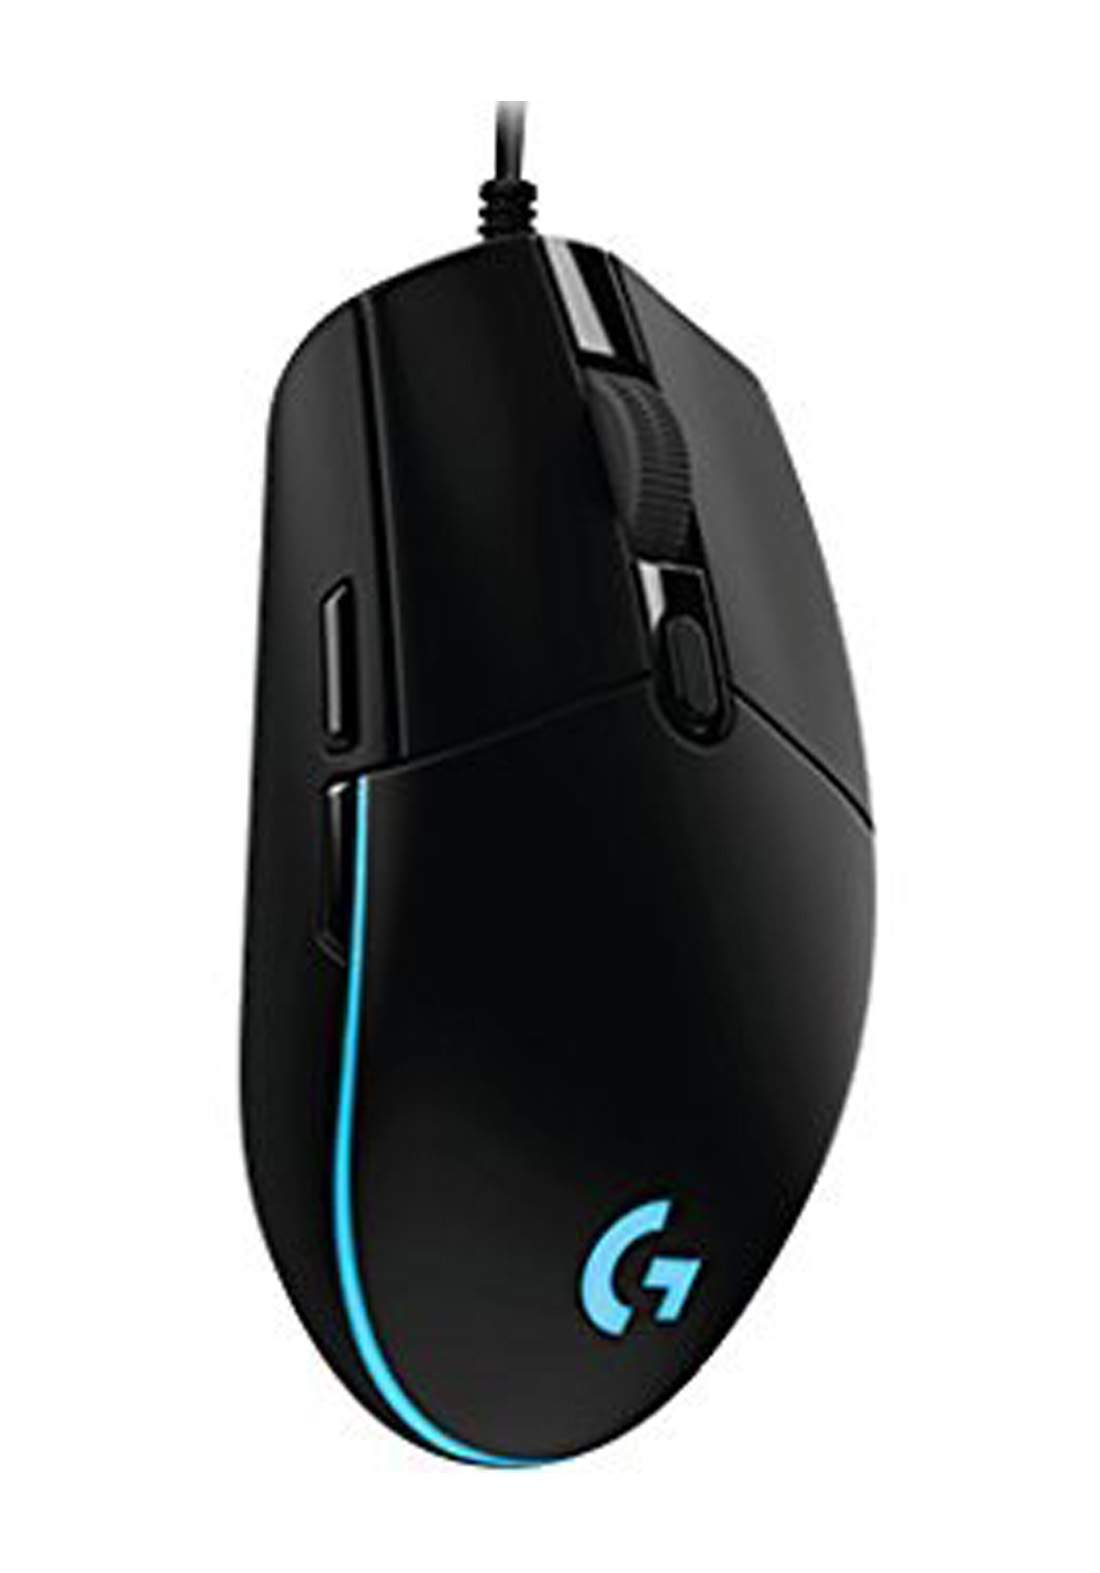 Logitech G203 Prodigy RGB Wired Gaming Mouse – Black ماوس